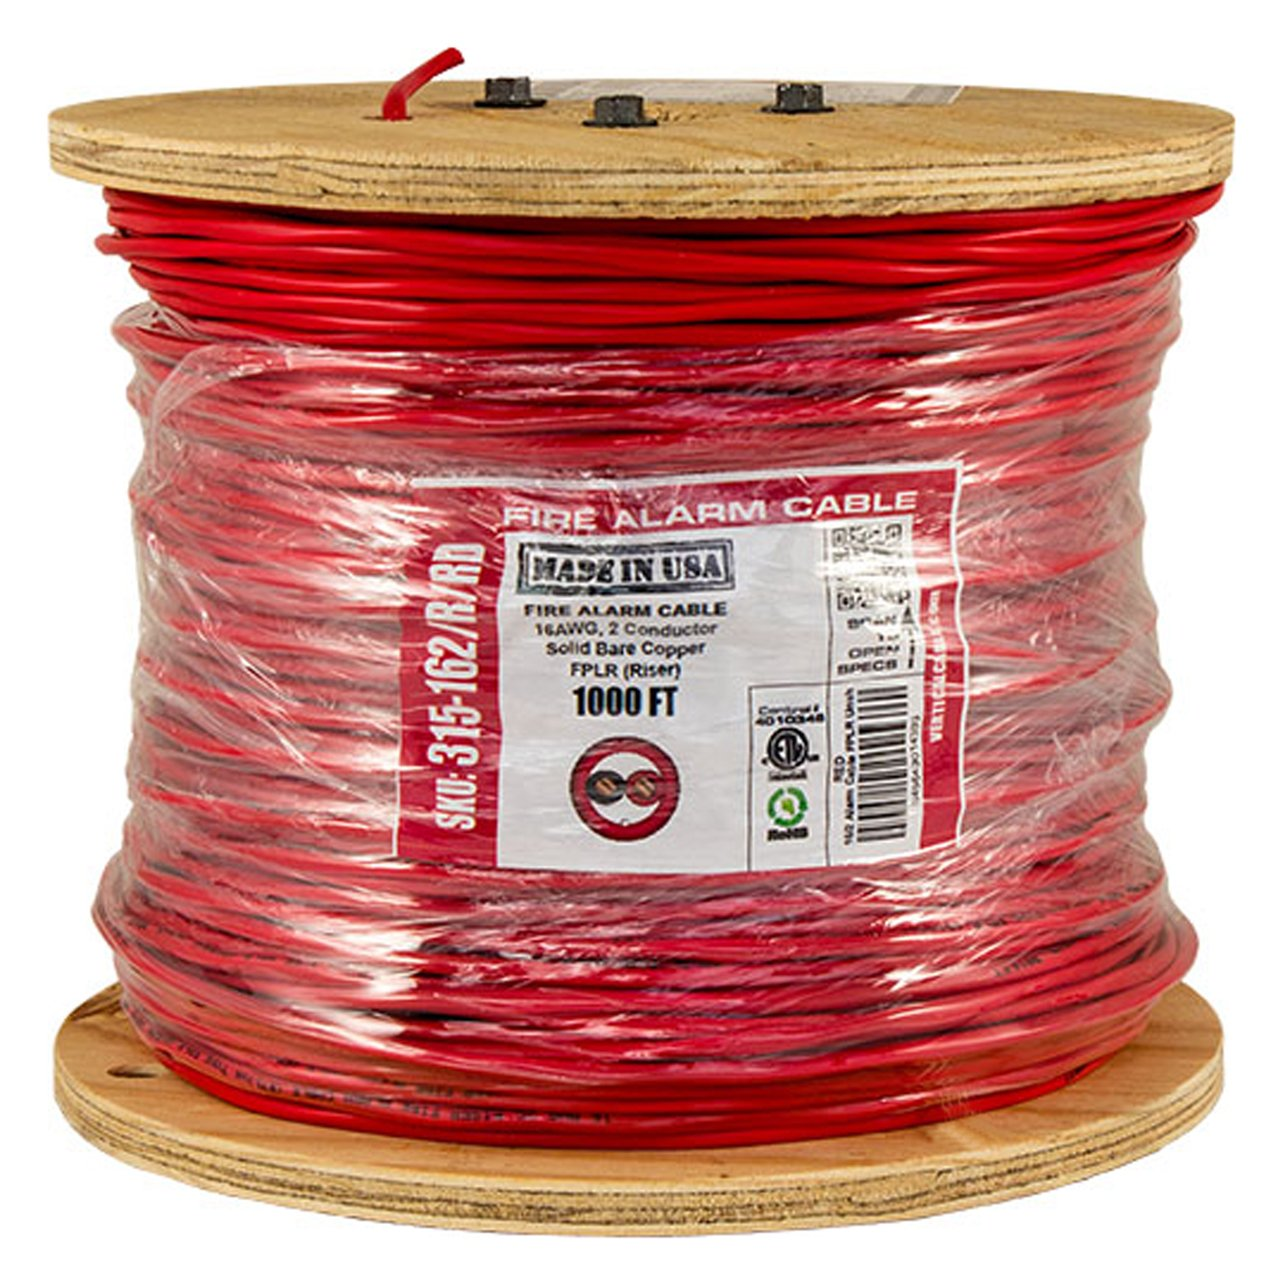 Vertical Cable Fire Alarm Cable, 16 AWG, 2 Conductor, Solid, Unshielded, FPLR (Riser), 1000ft Spool, Red - Made in USA by Vertical Cable